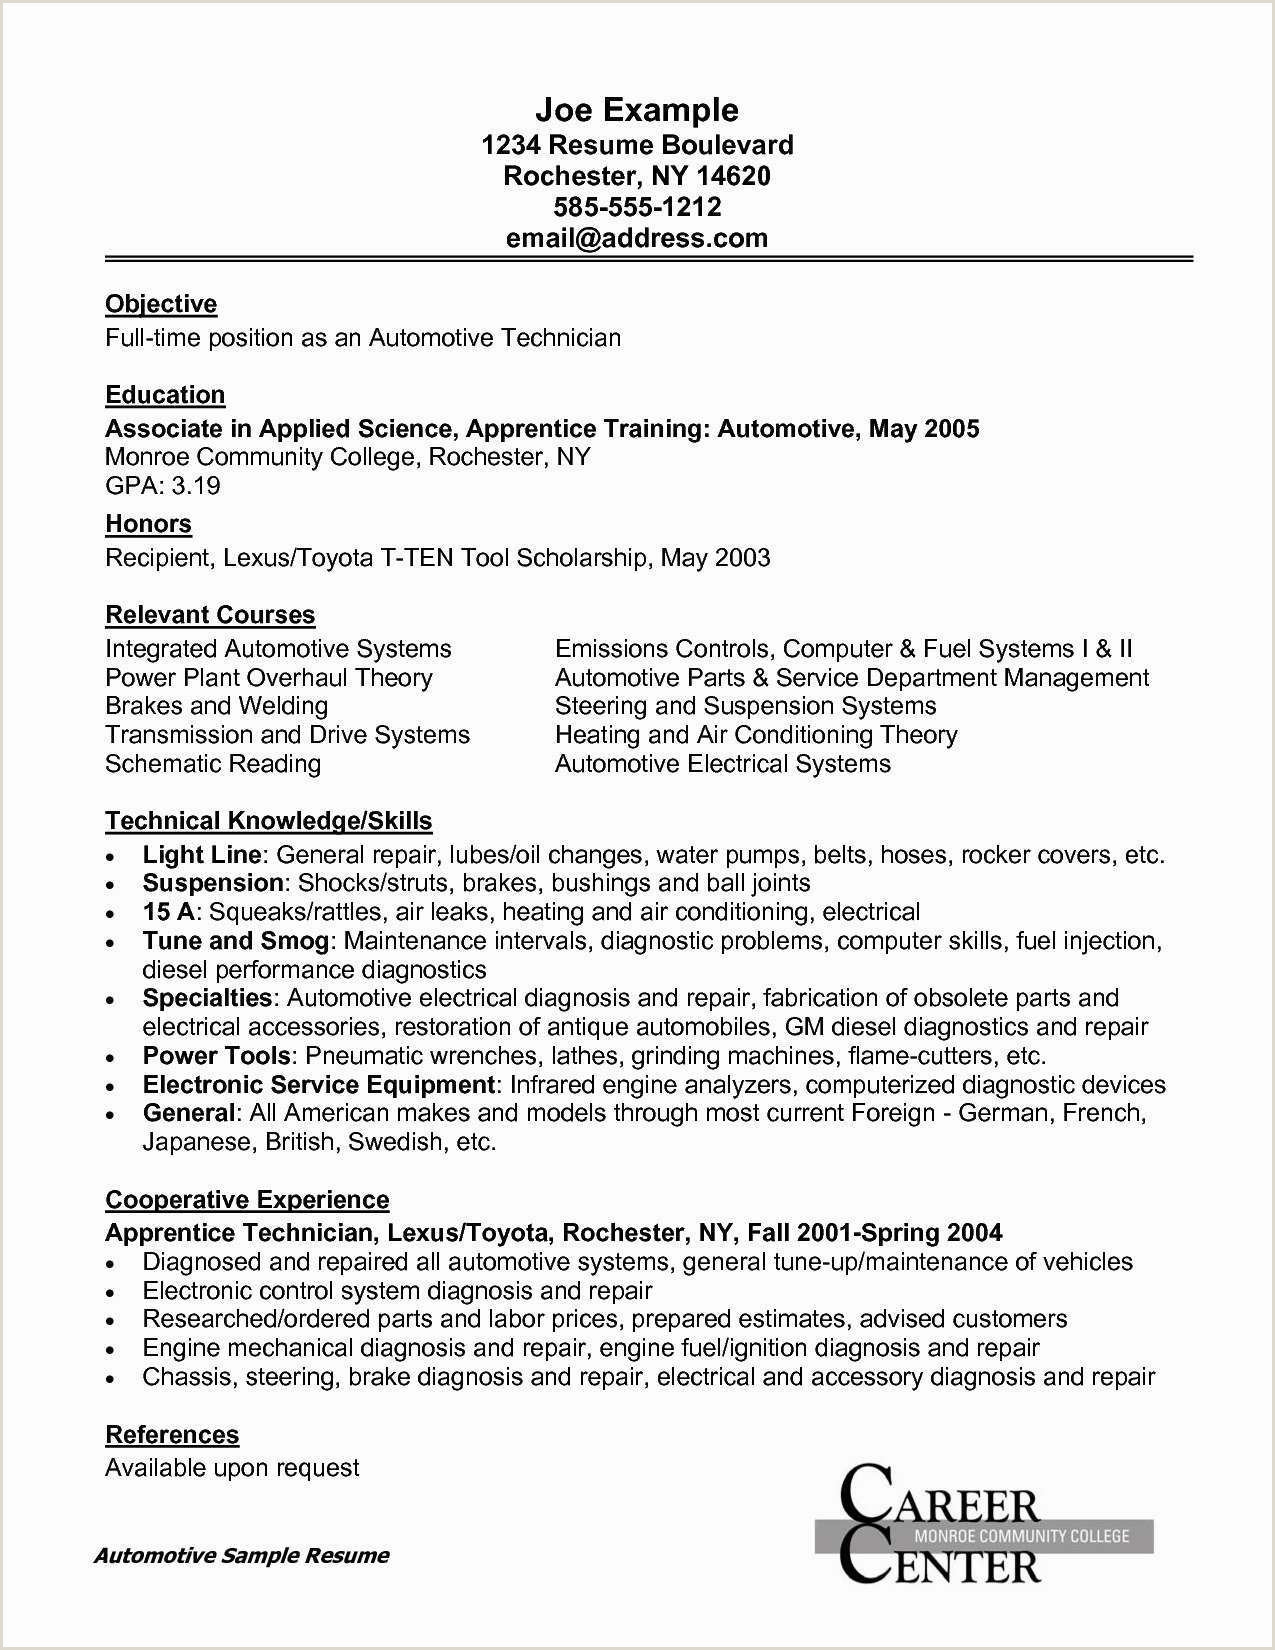 9 Automotive Job Resume Examples